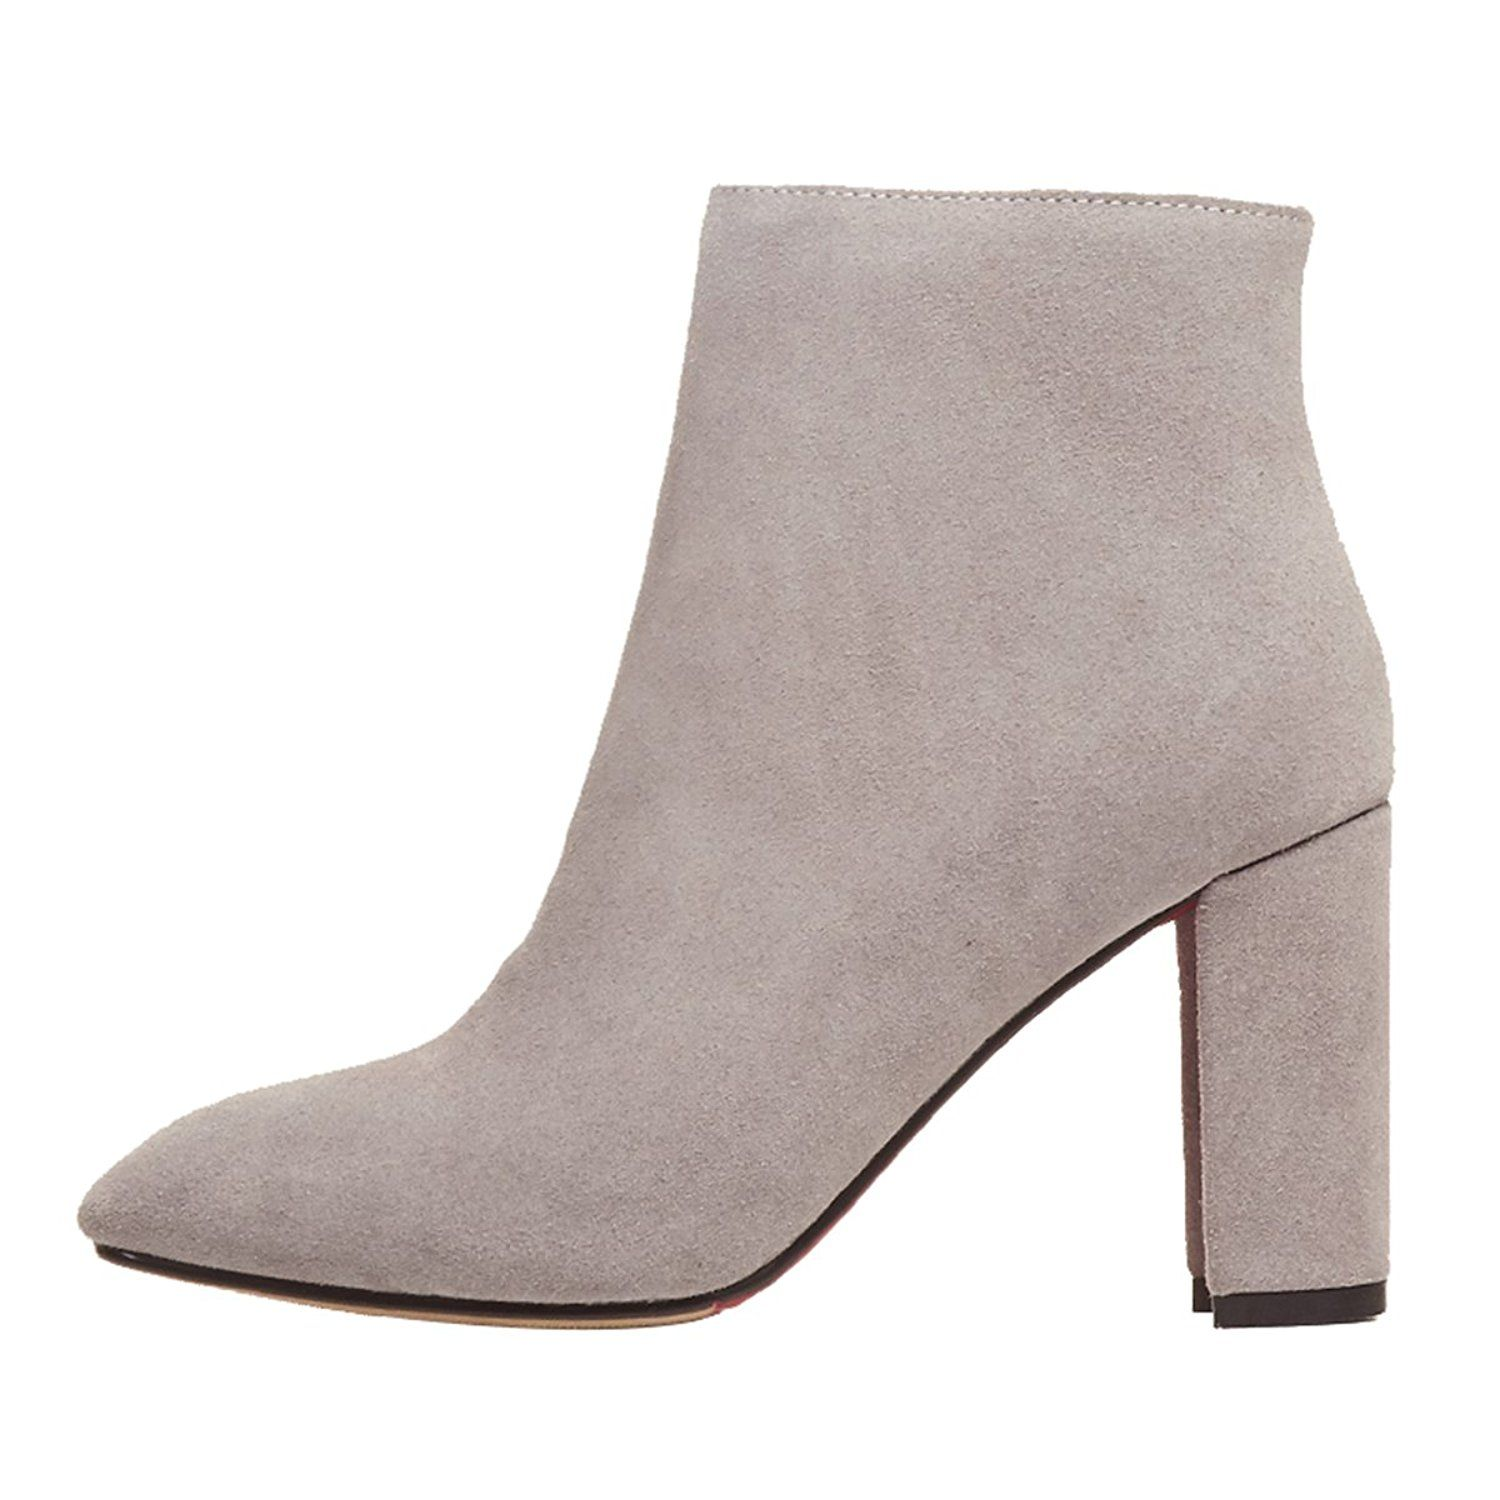 Guoar Women's Chunky High Heel Shoes Bootie Pointed Toe Zip Ankle Boots for Party Dress *** Click on the image for additional details.